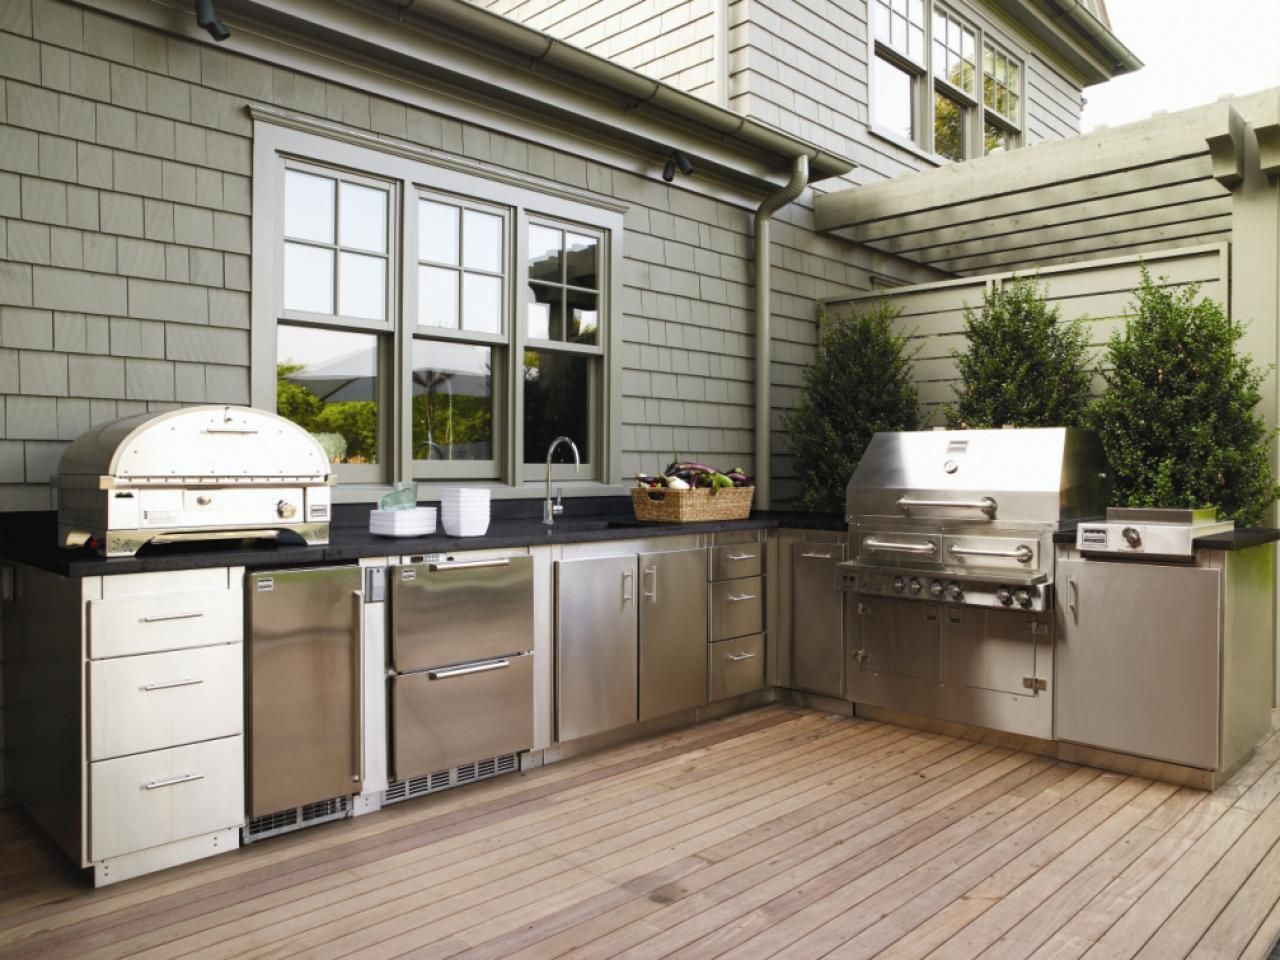 These diy outdoor kitchen plans turn your backyard into these diy outdoor kitchen plans turn your backyard into entertainment zone solutioingenieria Choice Image